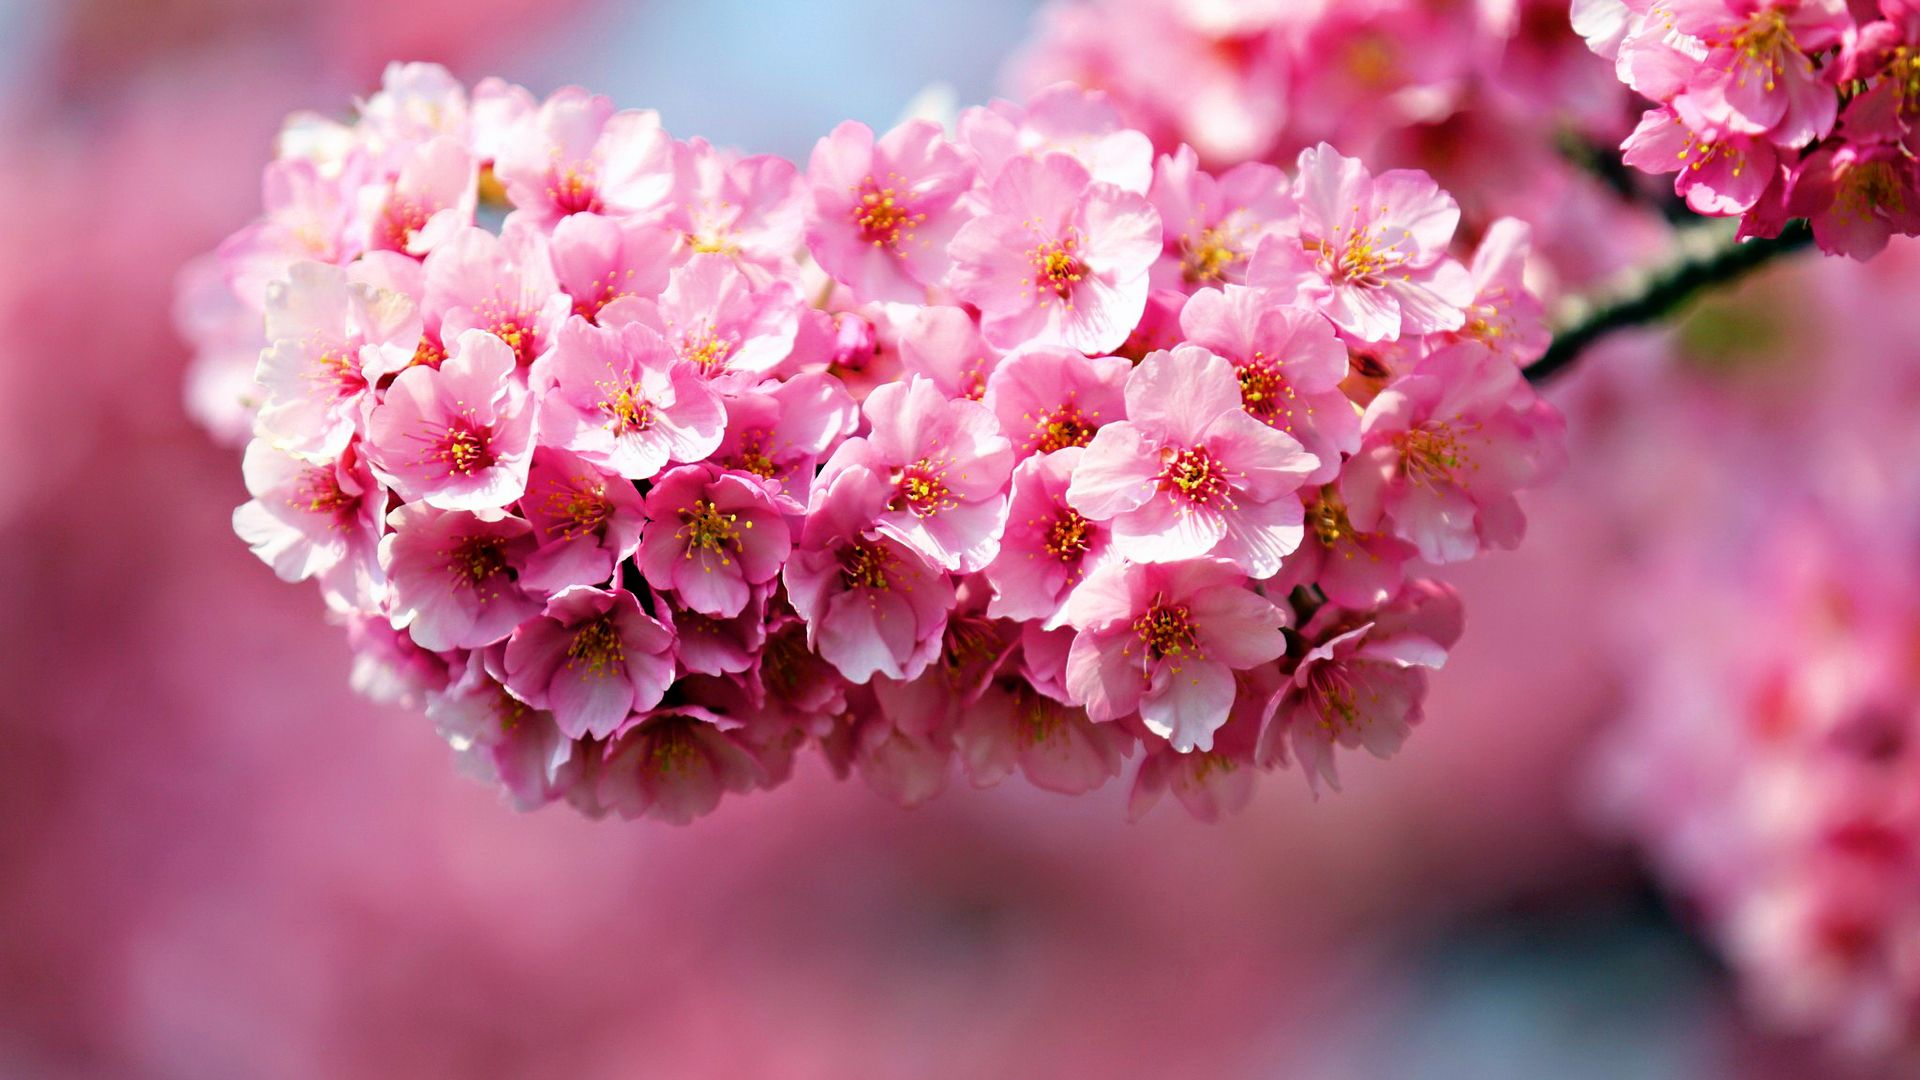 Pink Flower Wallpaper The Best Quality Pictures Pink Flowers Wallpaper Flower Desktop Wallpaper Beautiful Pink Flowers